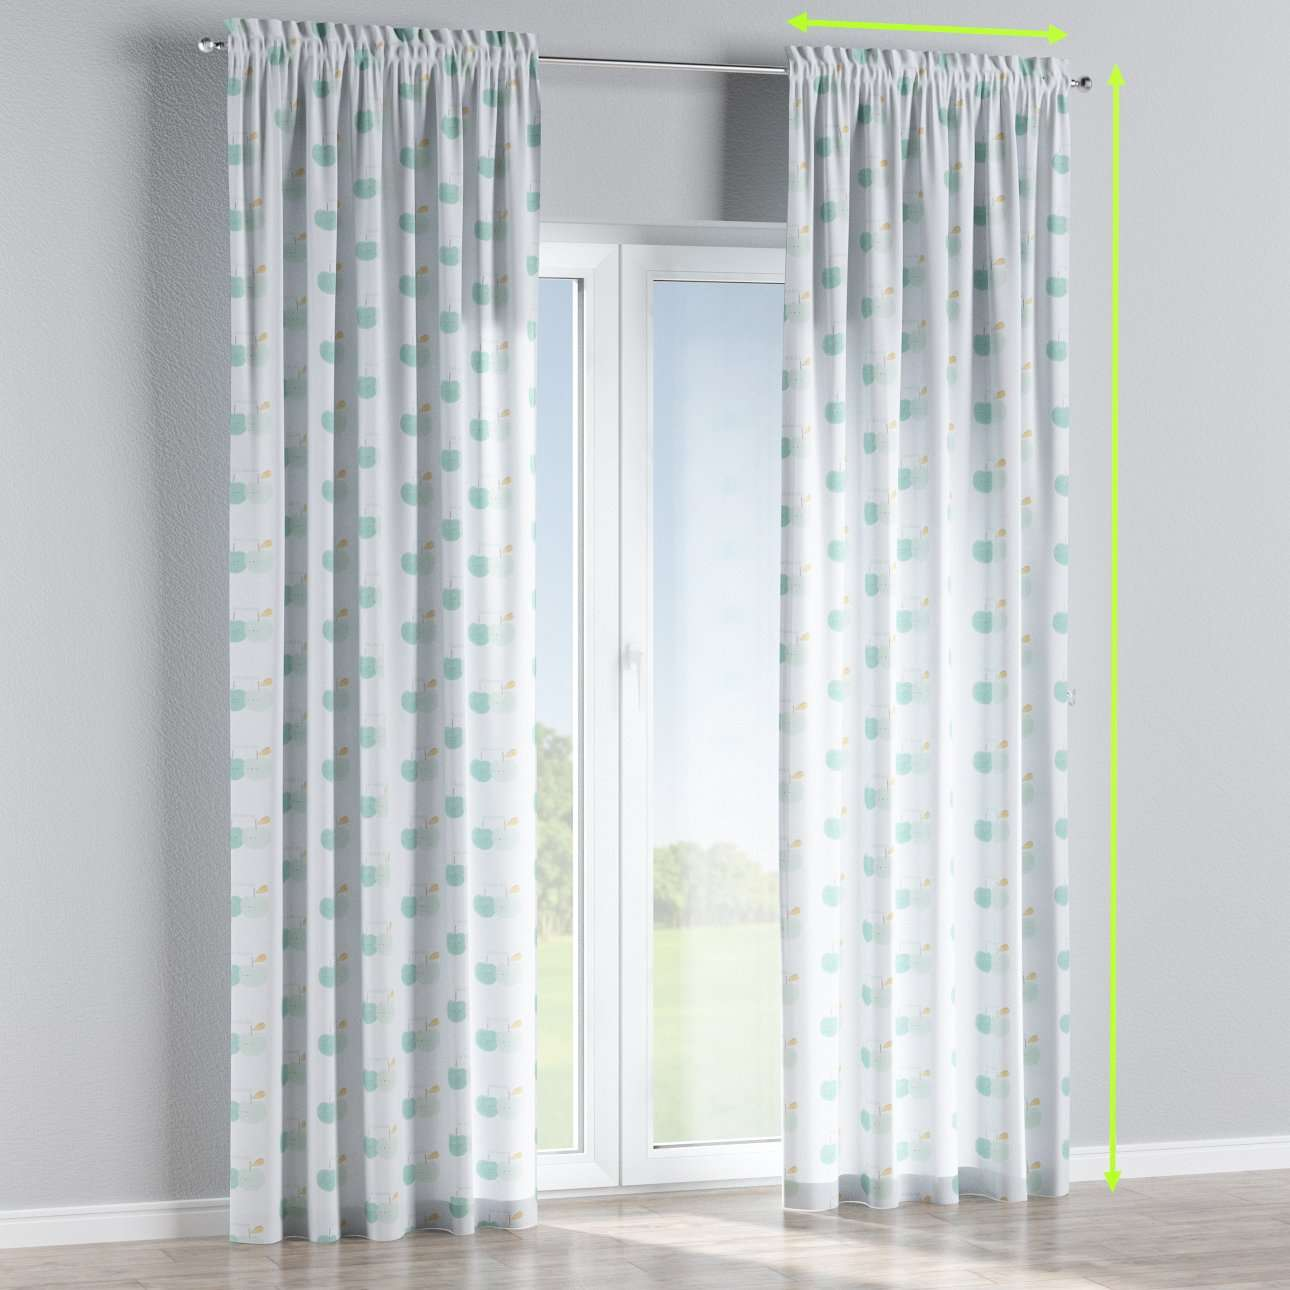 Slot and frill lined curtains in collection Apanona, fabric: 151-02